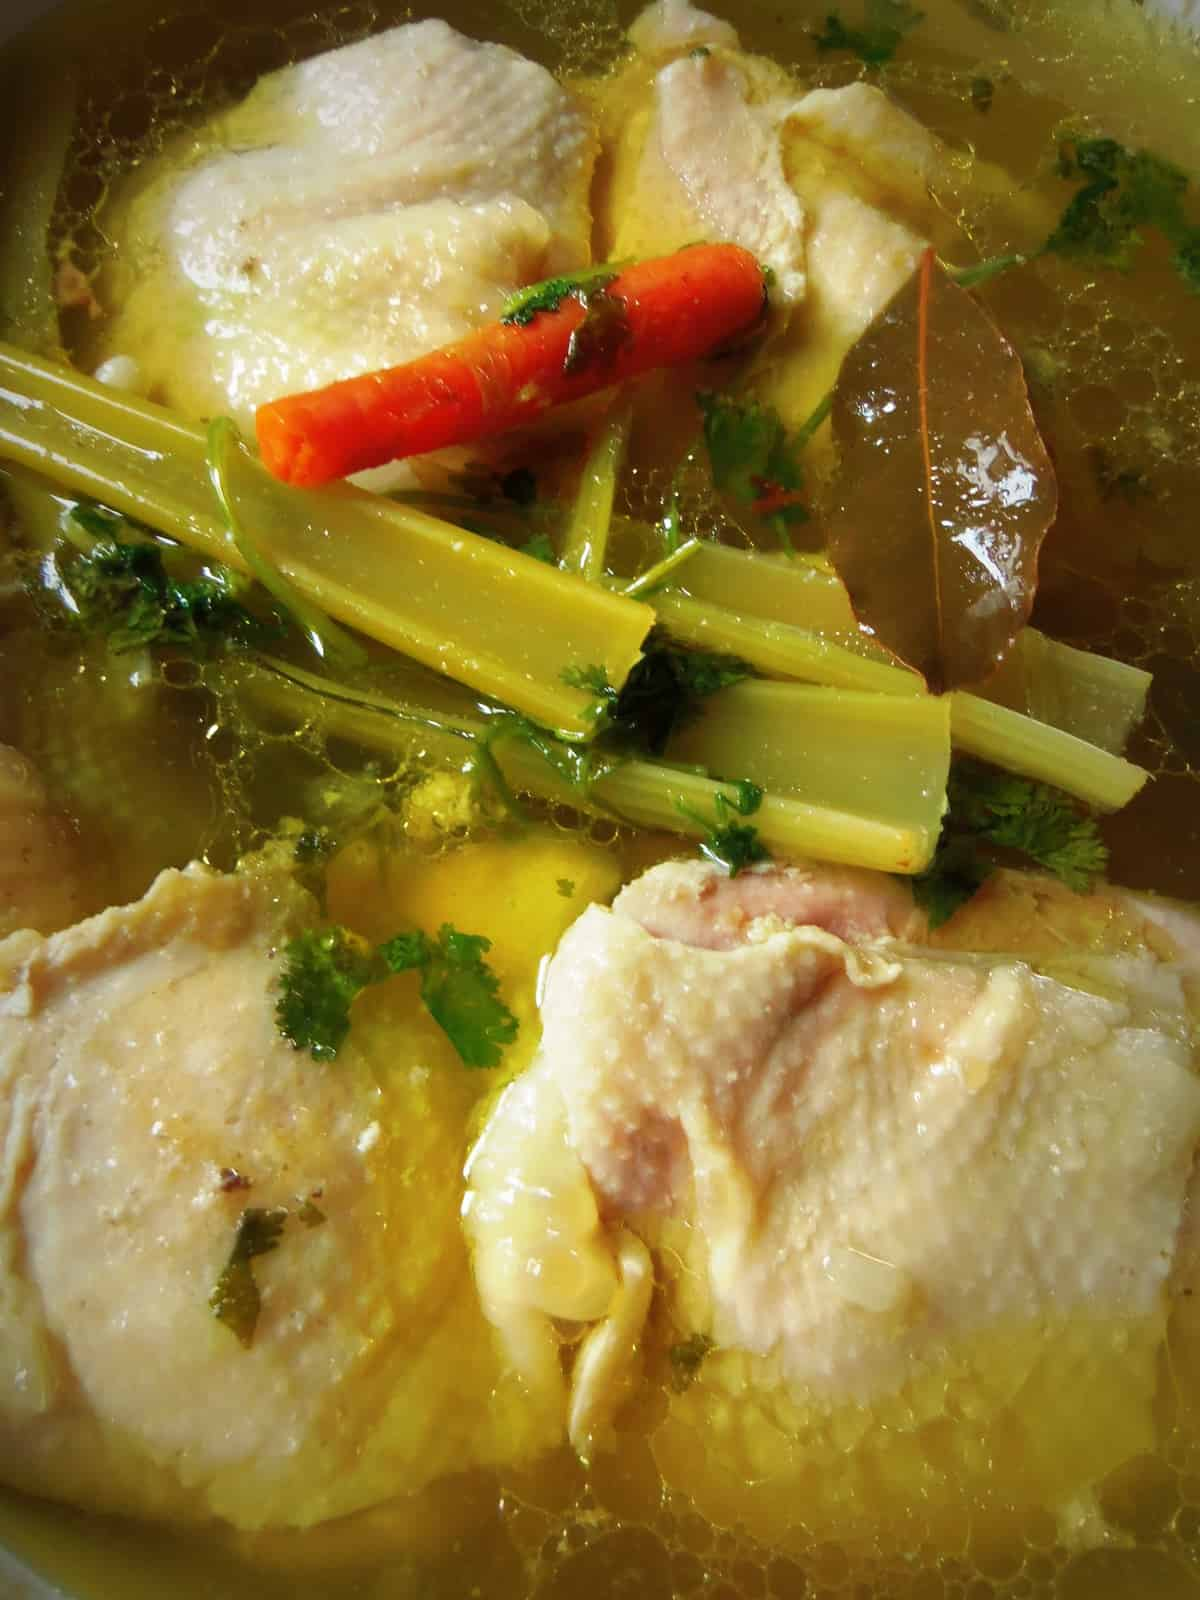 There is nothing more delicious than any homemade stock for all of your favorite recipes.